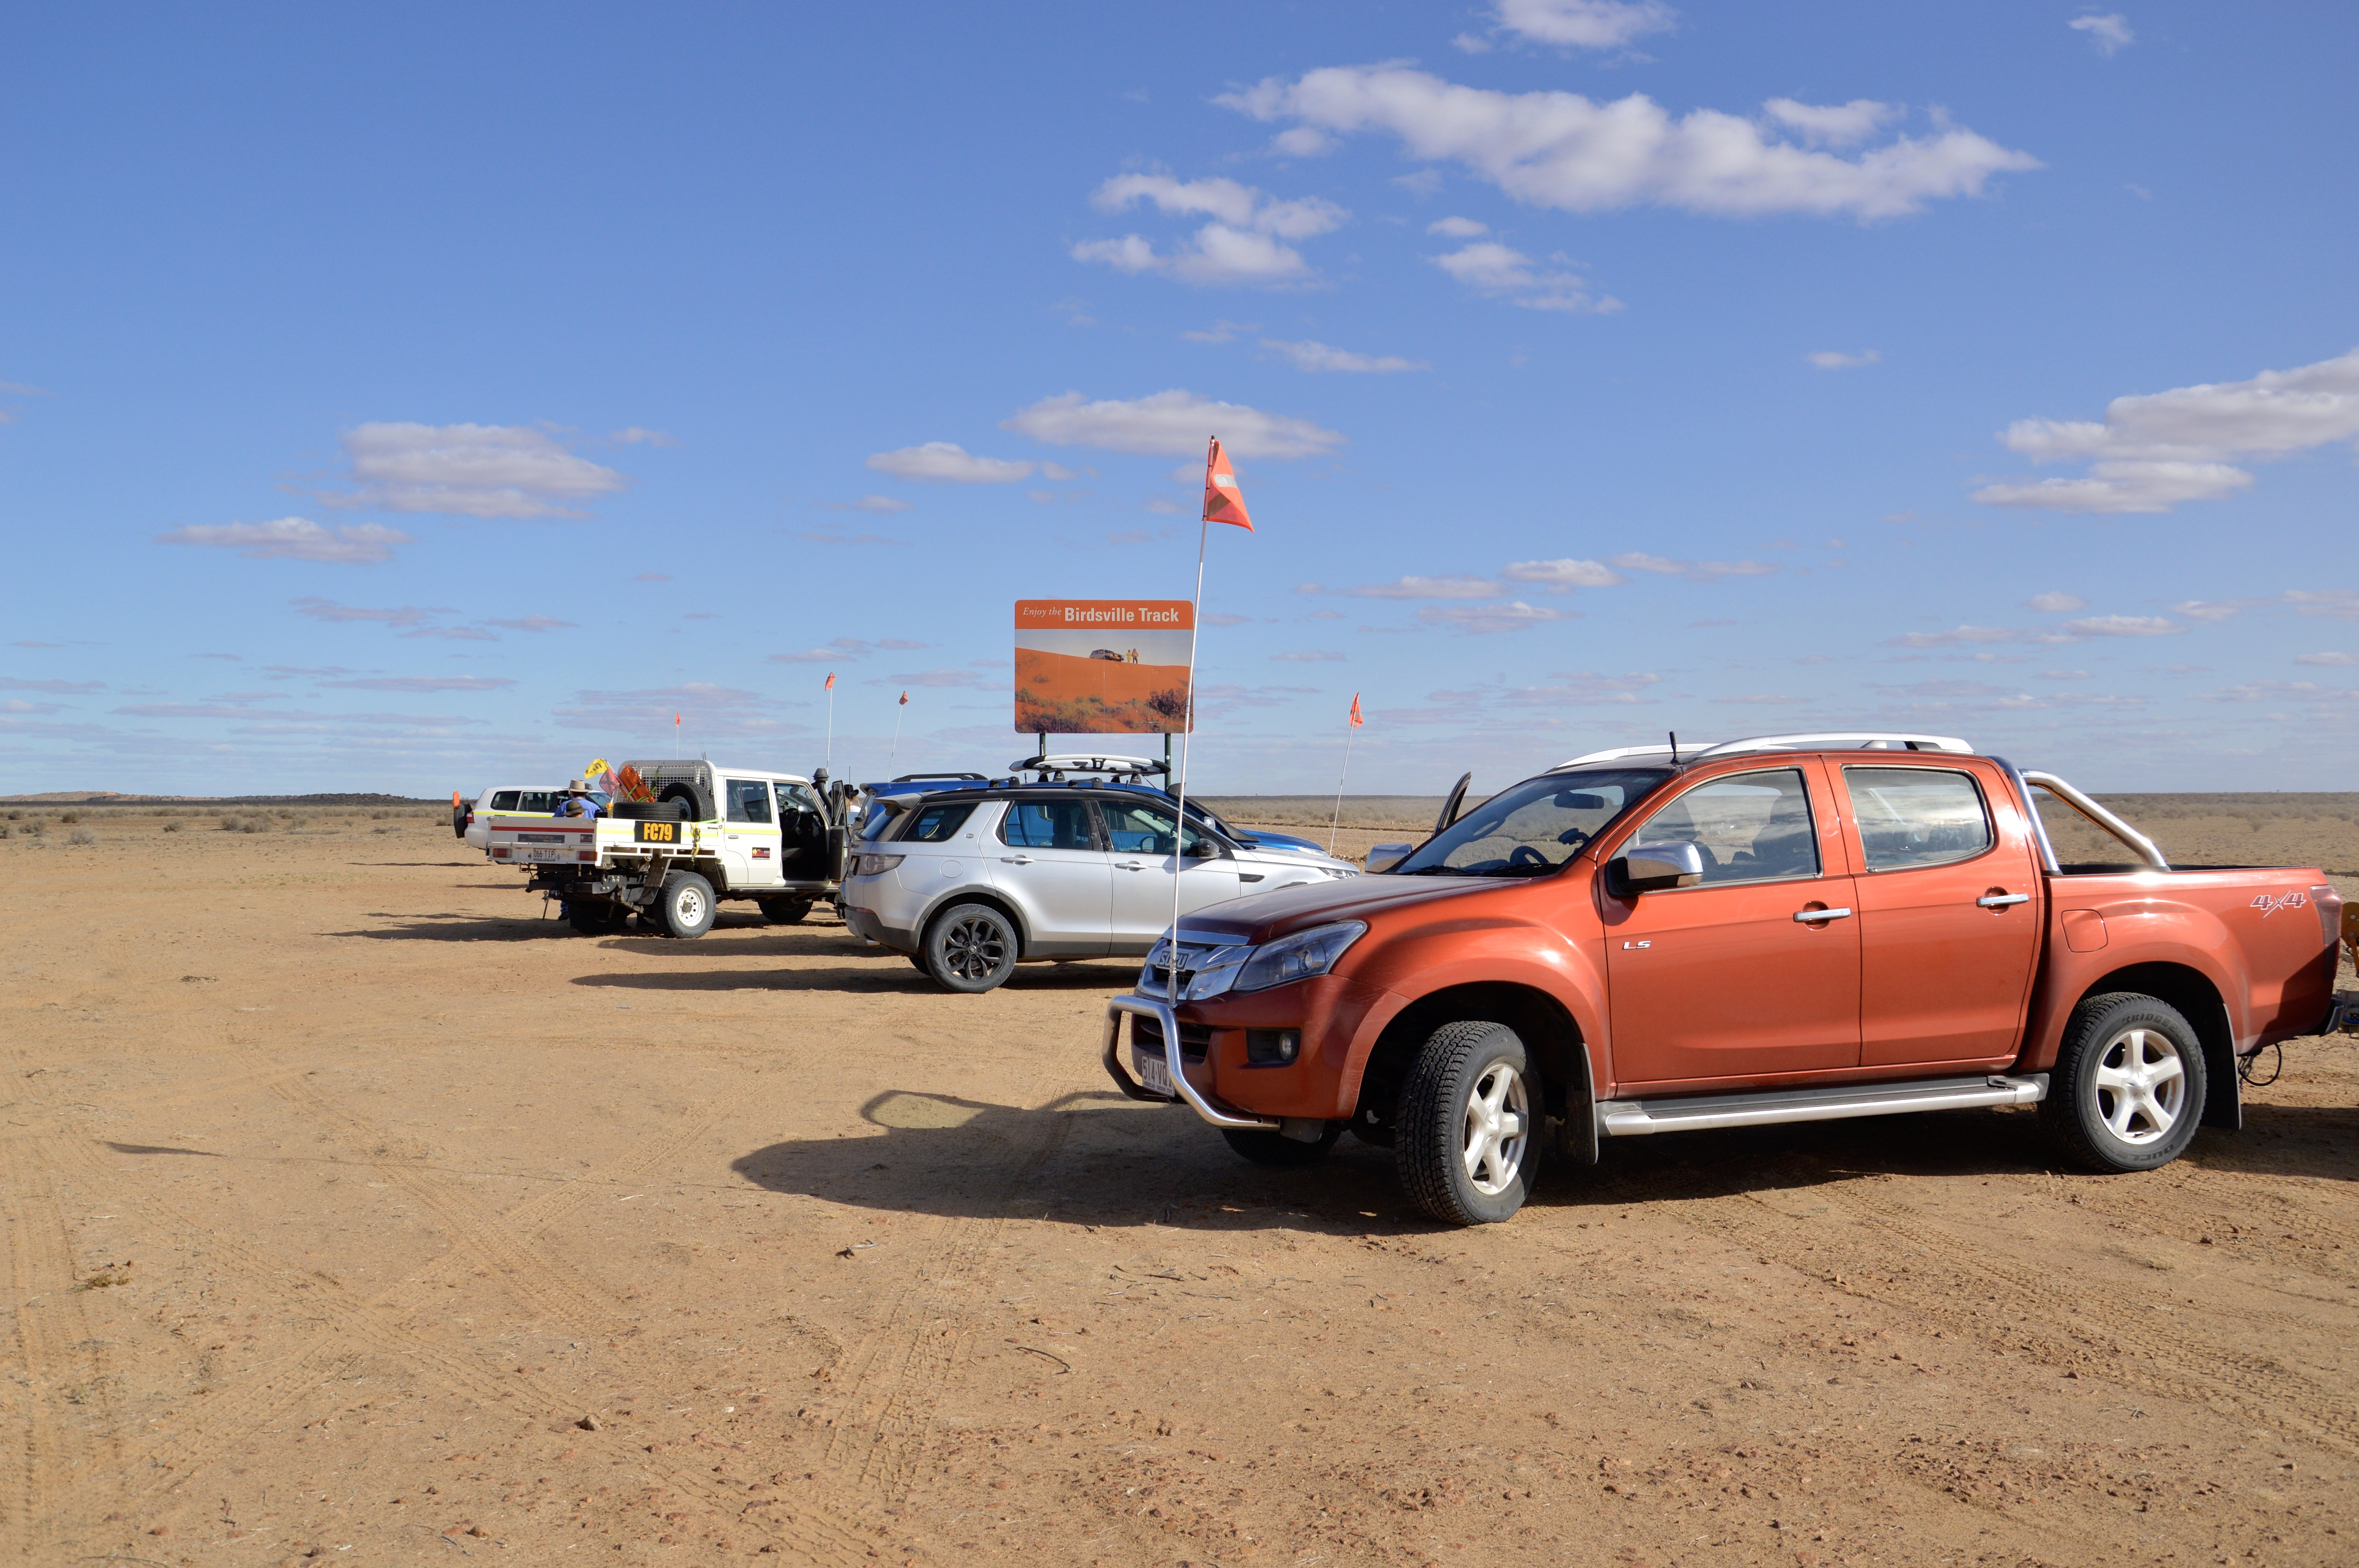 We've reached the Birdsville Track! Source: Great Australian Doorstep